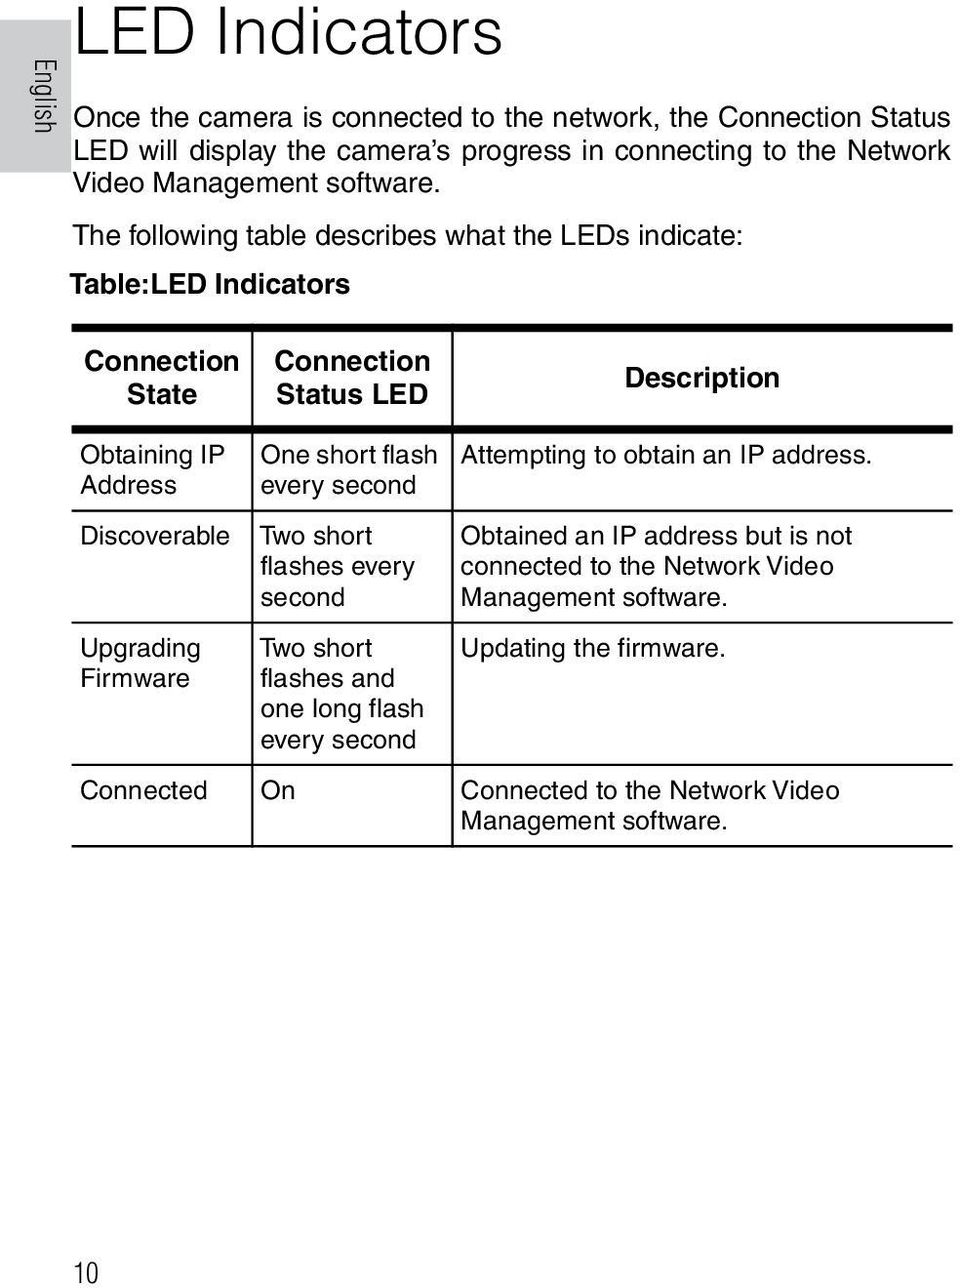 The following table describes what the LEDs indicate: Table:LED Indicators Connection State Connection Status LED Description Obtaining IP Address Discoverable Upgrading